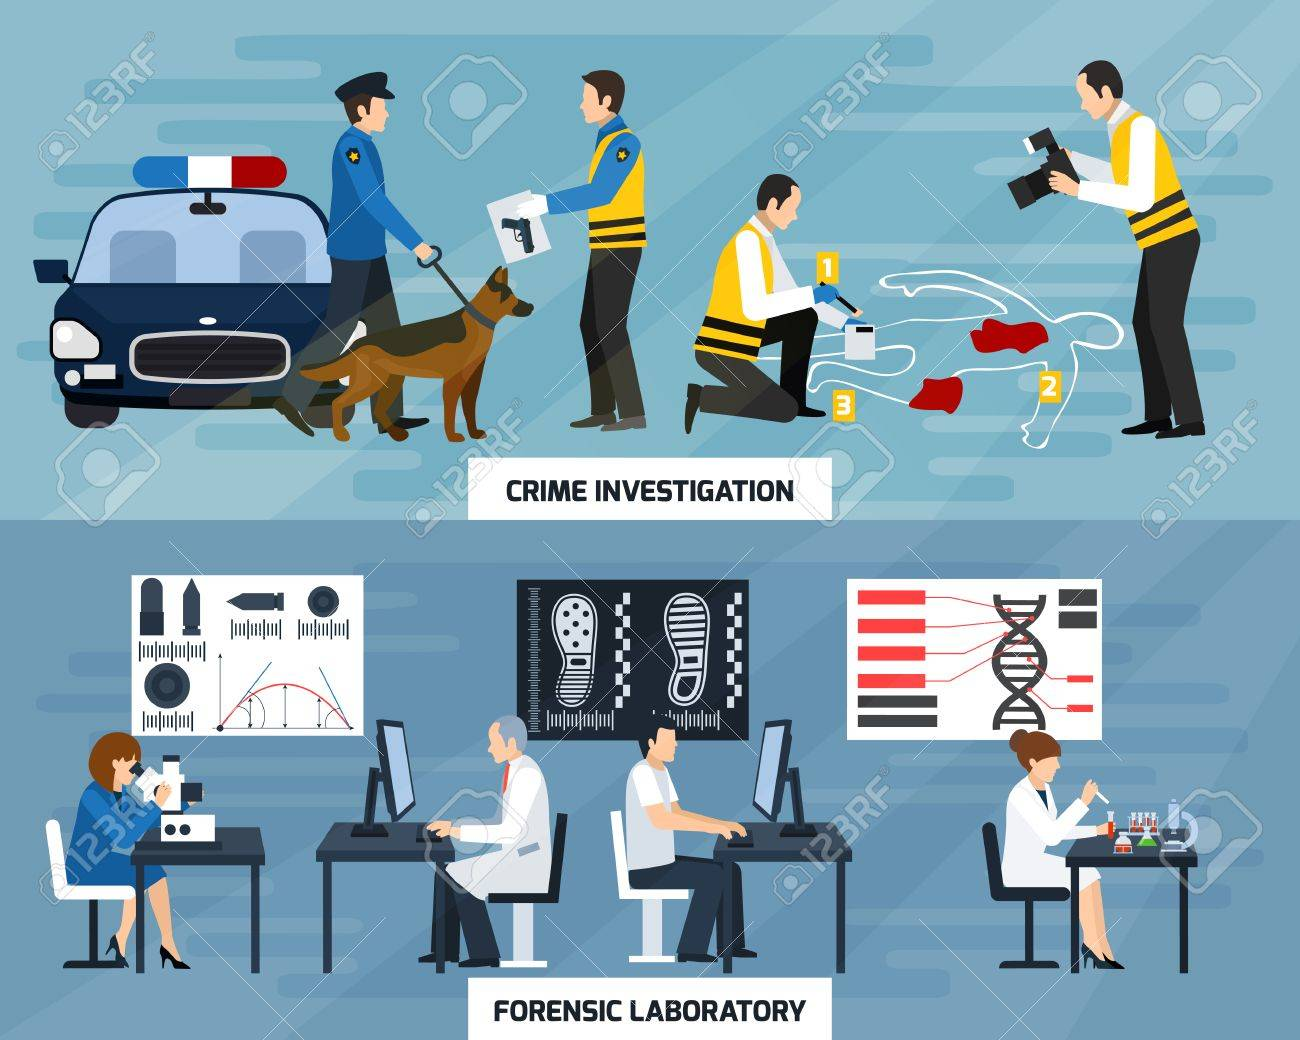 Crime investigation flat horizontal banners with police experts and forensic laboratory on blue background isolated vector illustration - 74749366